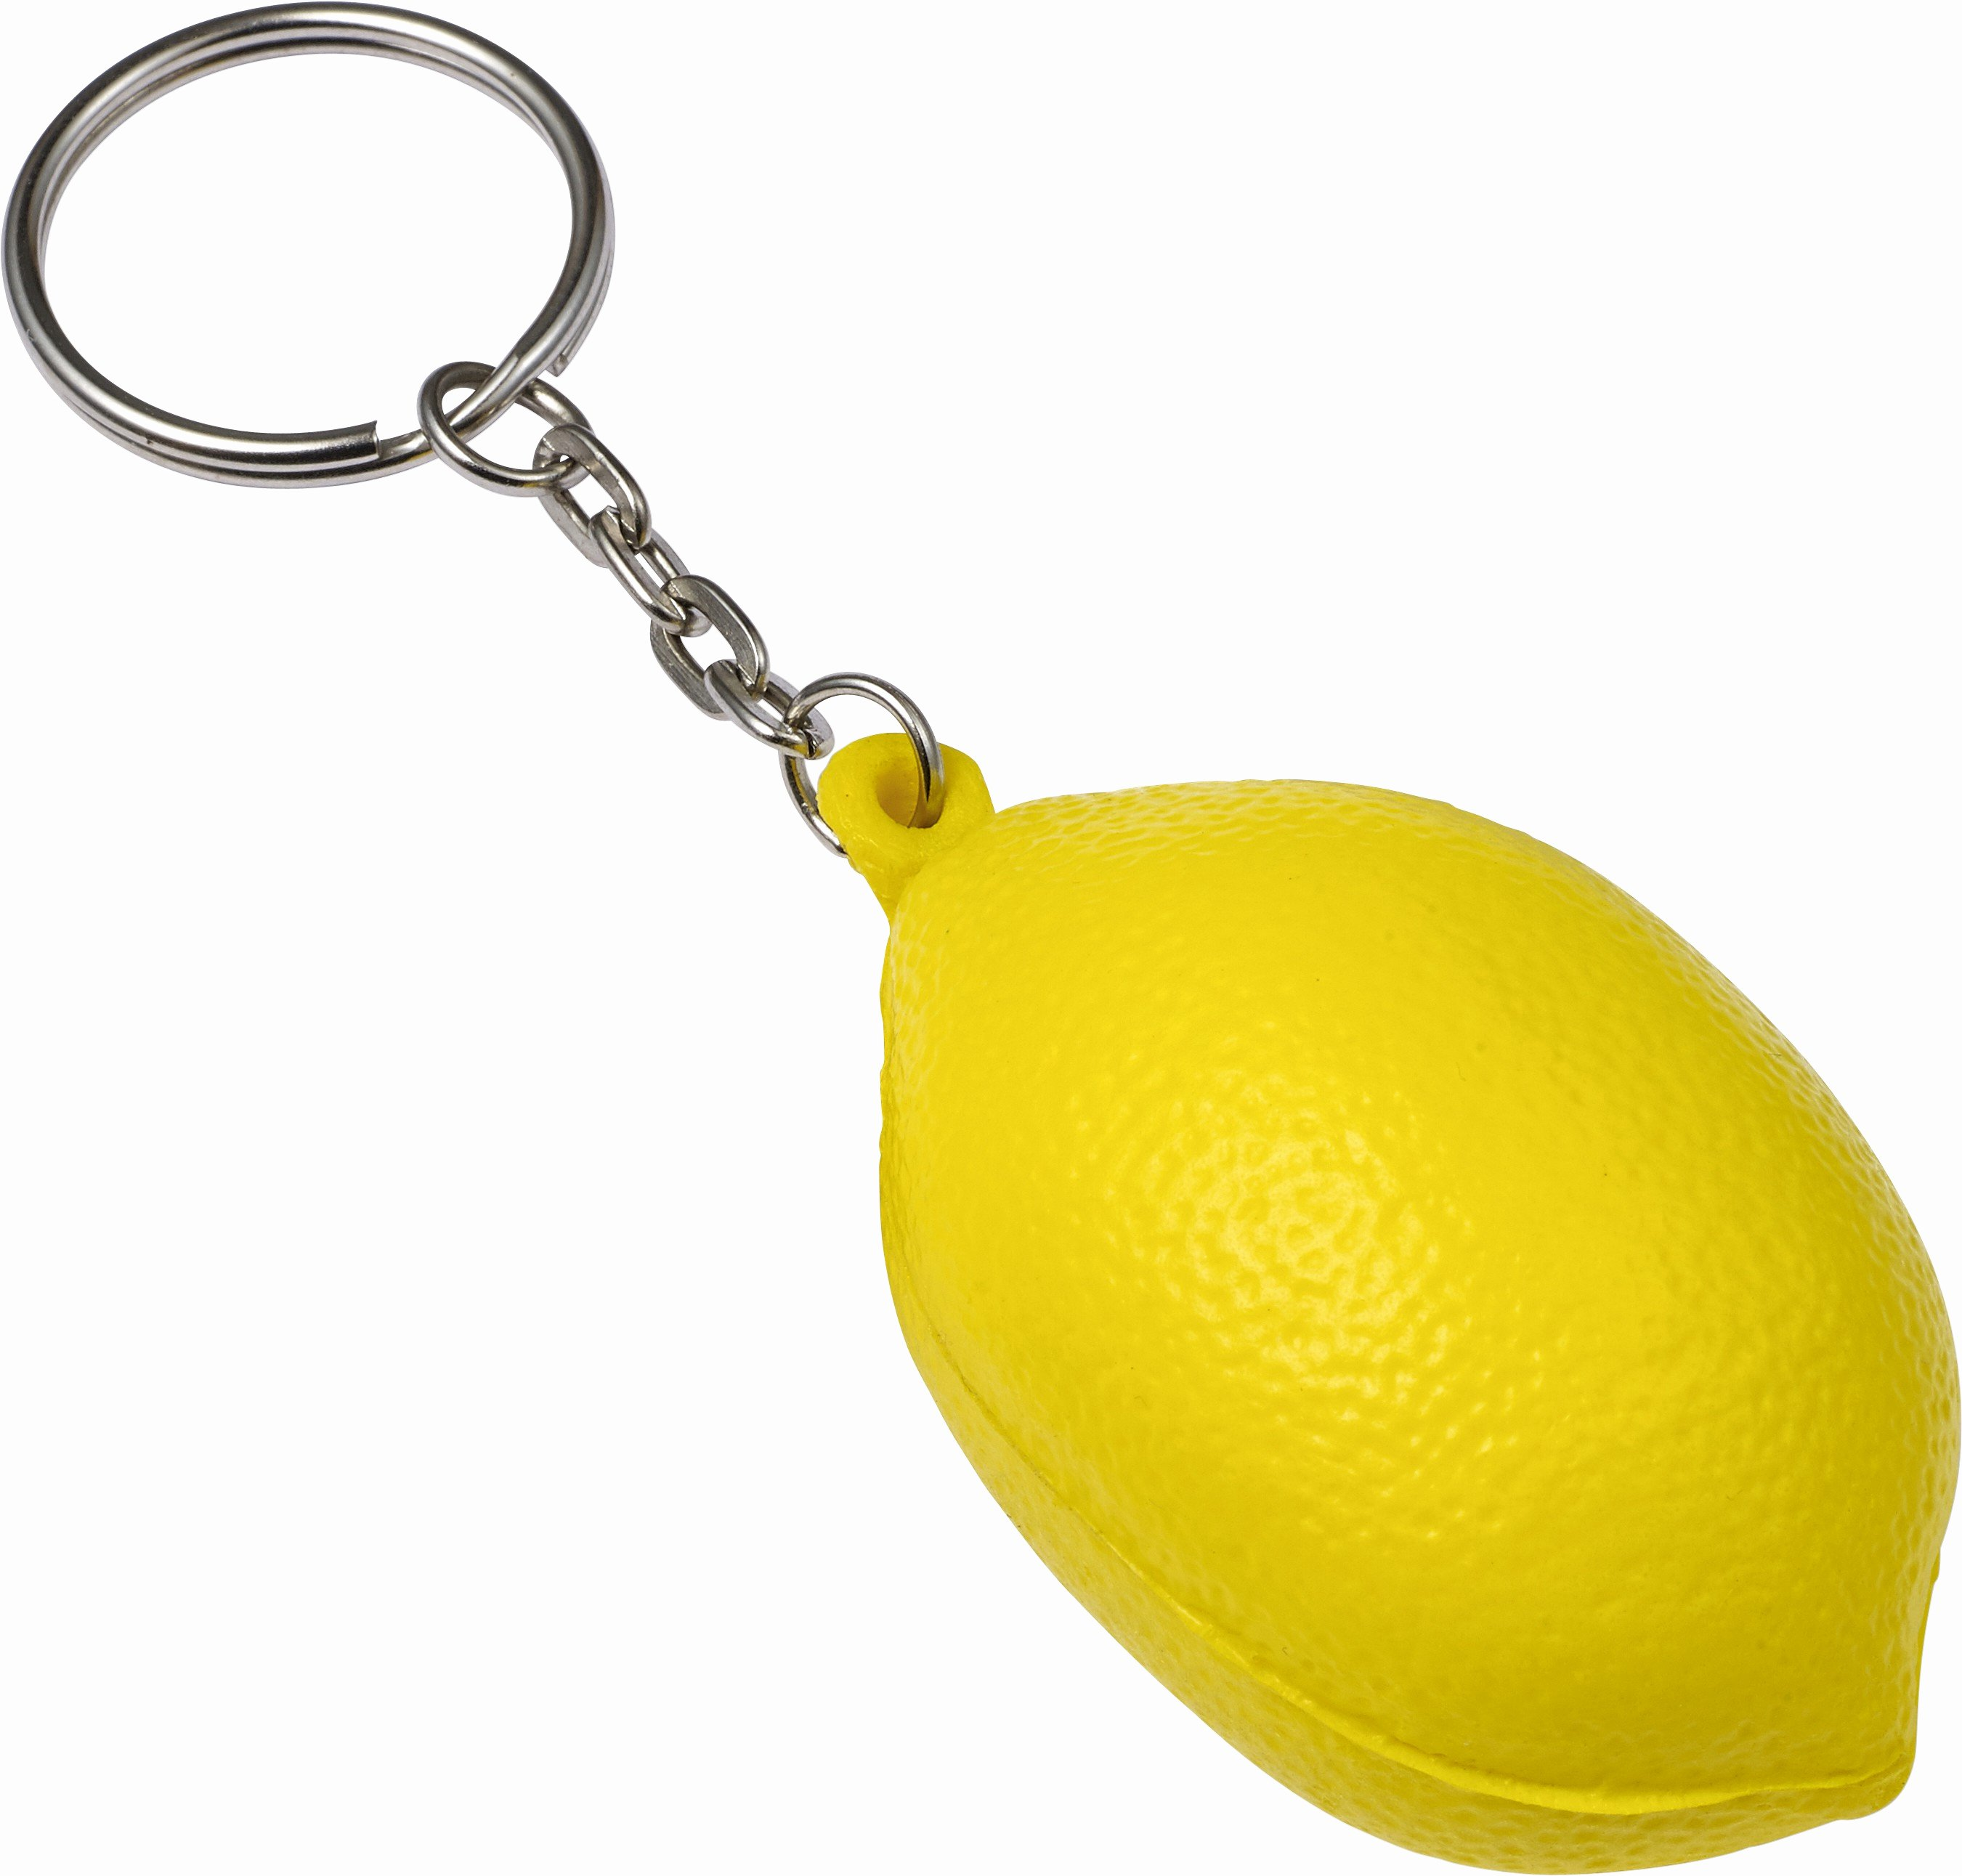 Key Shaped Key Holder Fresh Key Holder Fruit Shaped Yellow Plastic Keychain